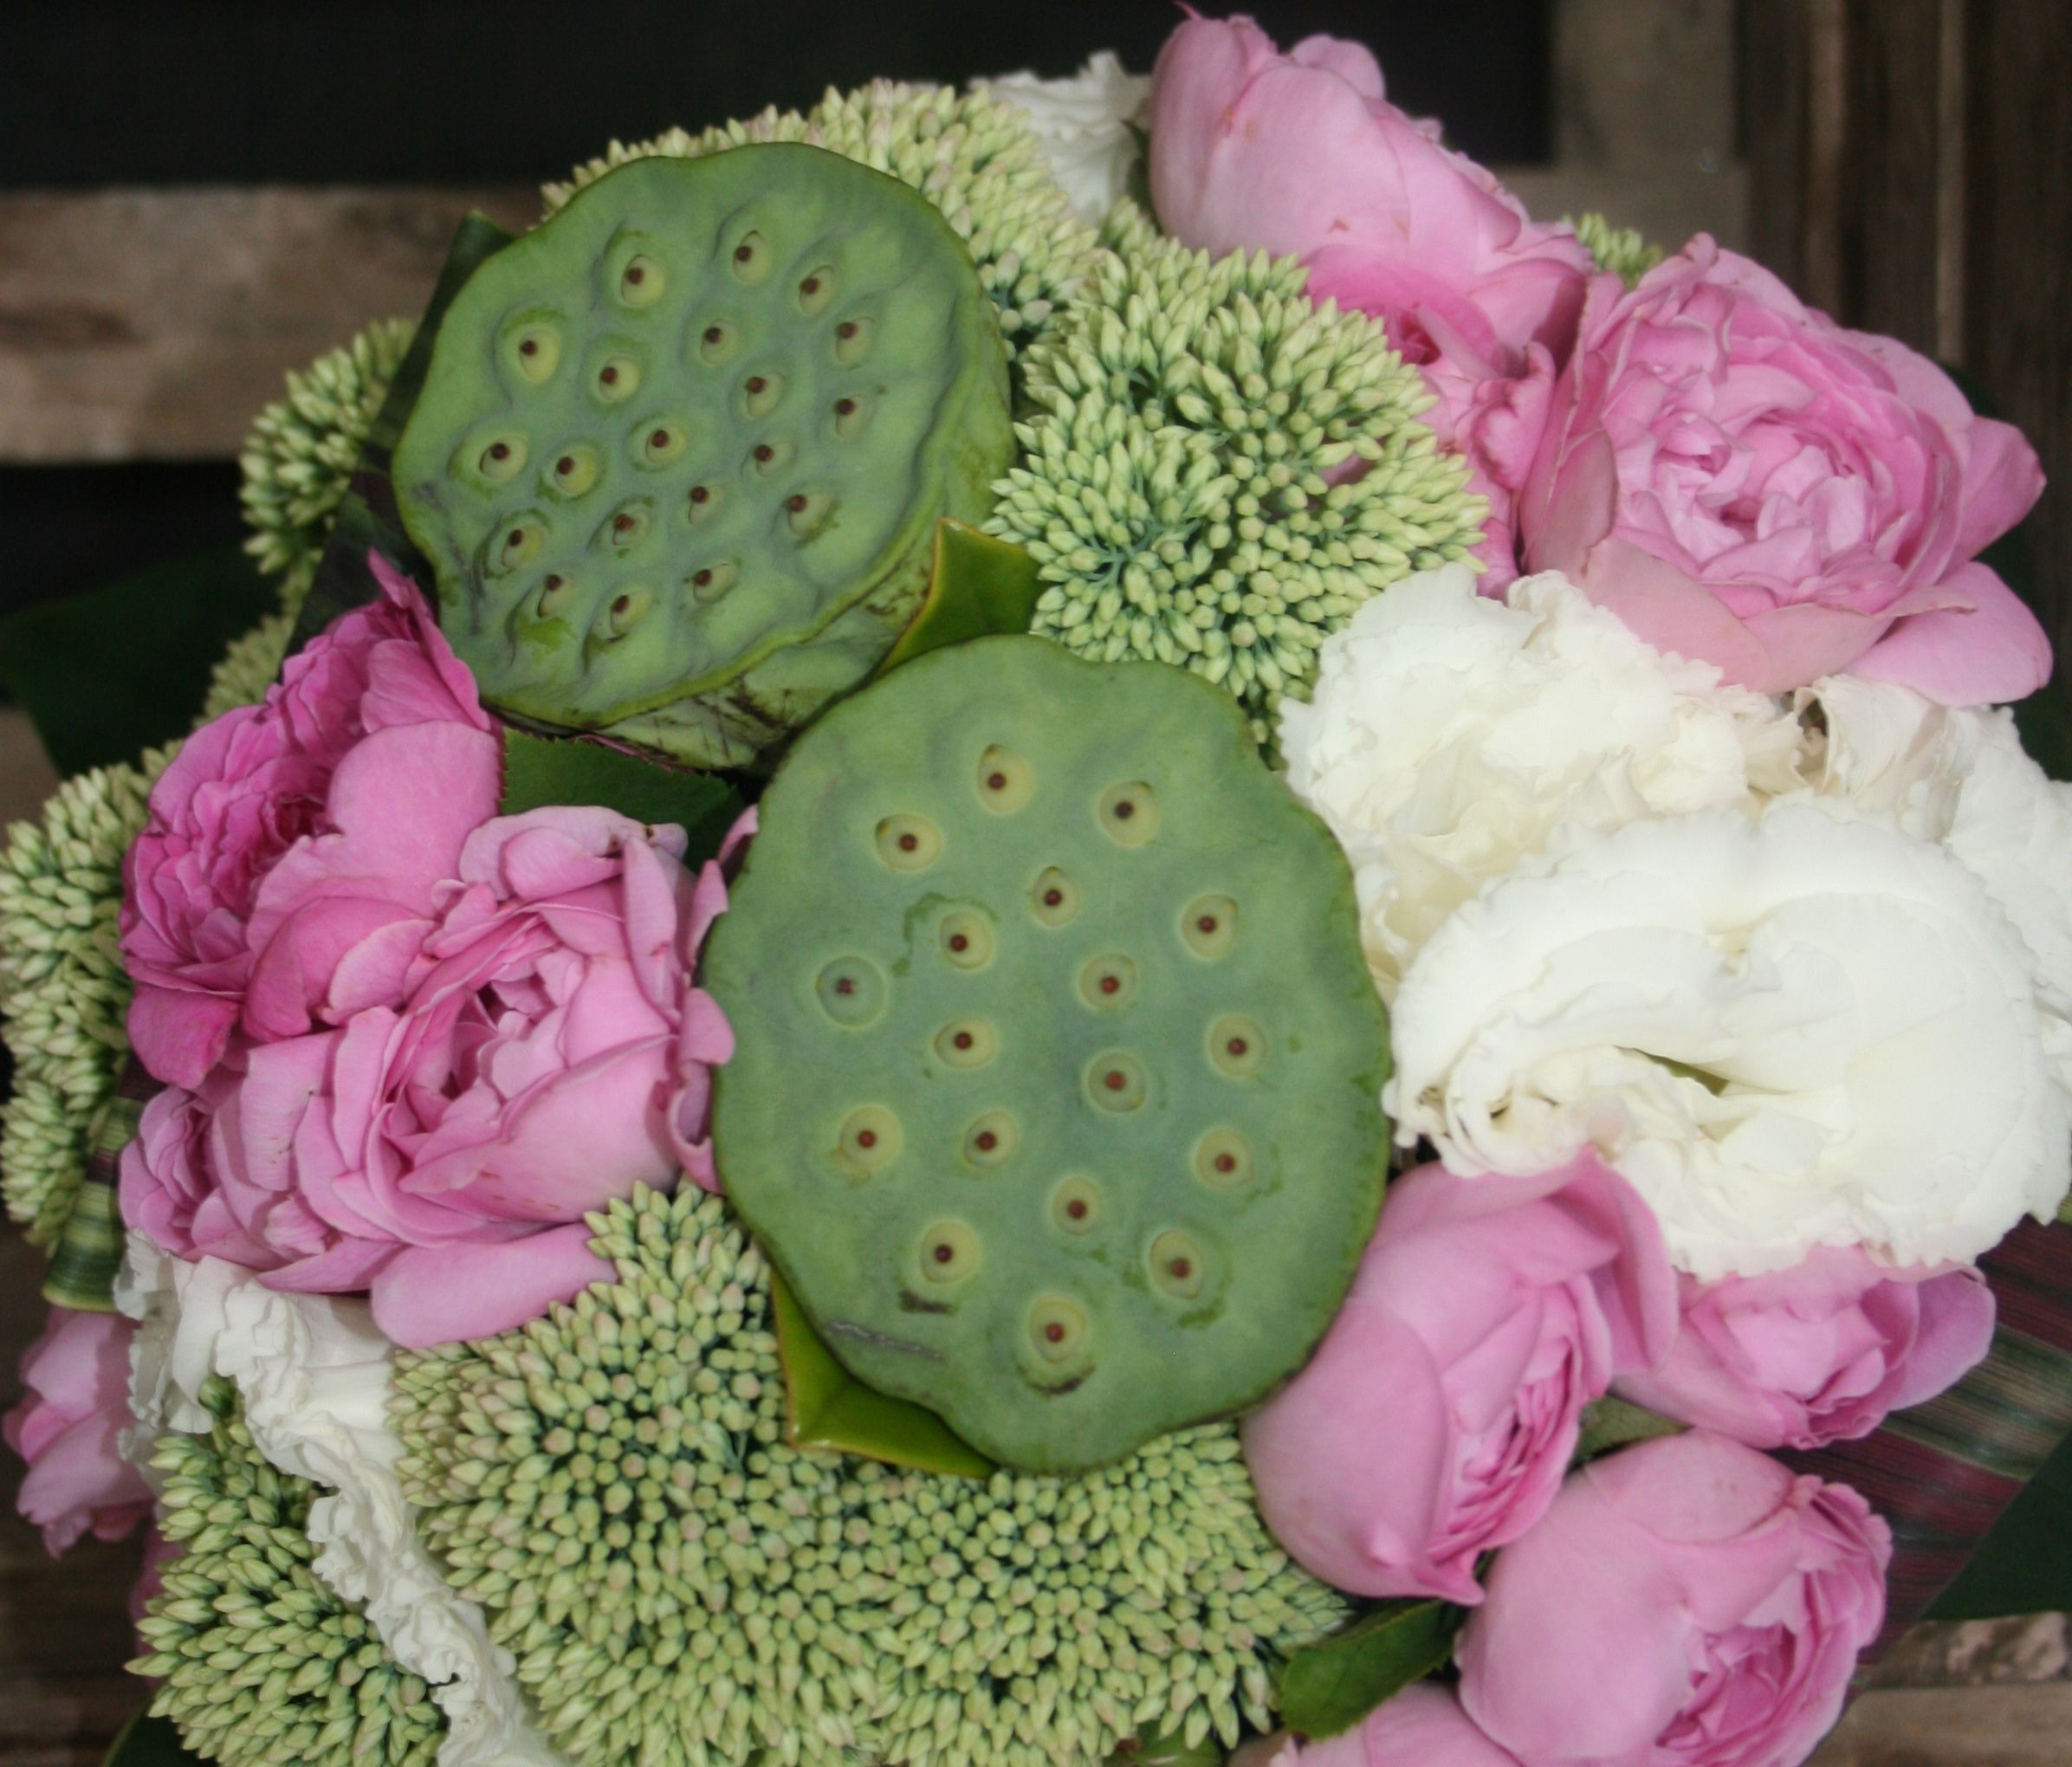 Lotus pod bouquet flowers in the garden pinterest bouquet lotus pod bouquet flowers dhlflorist Image collections